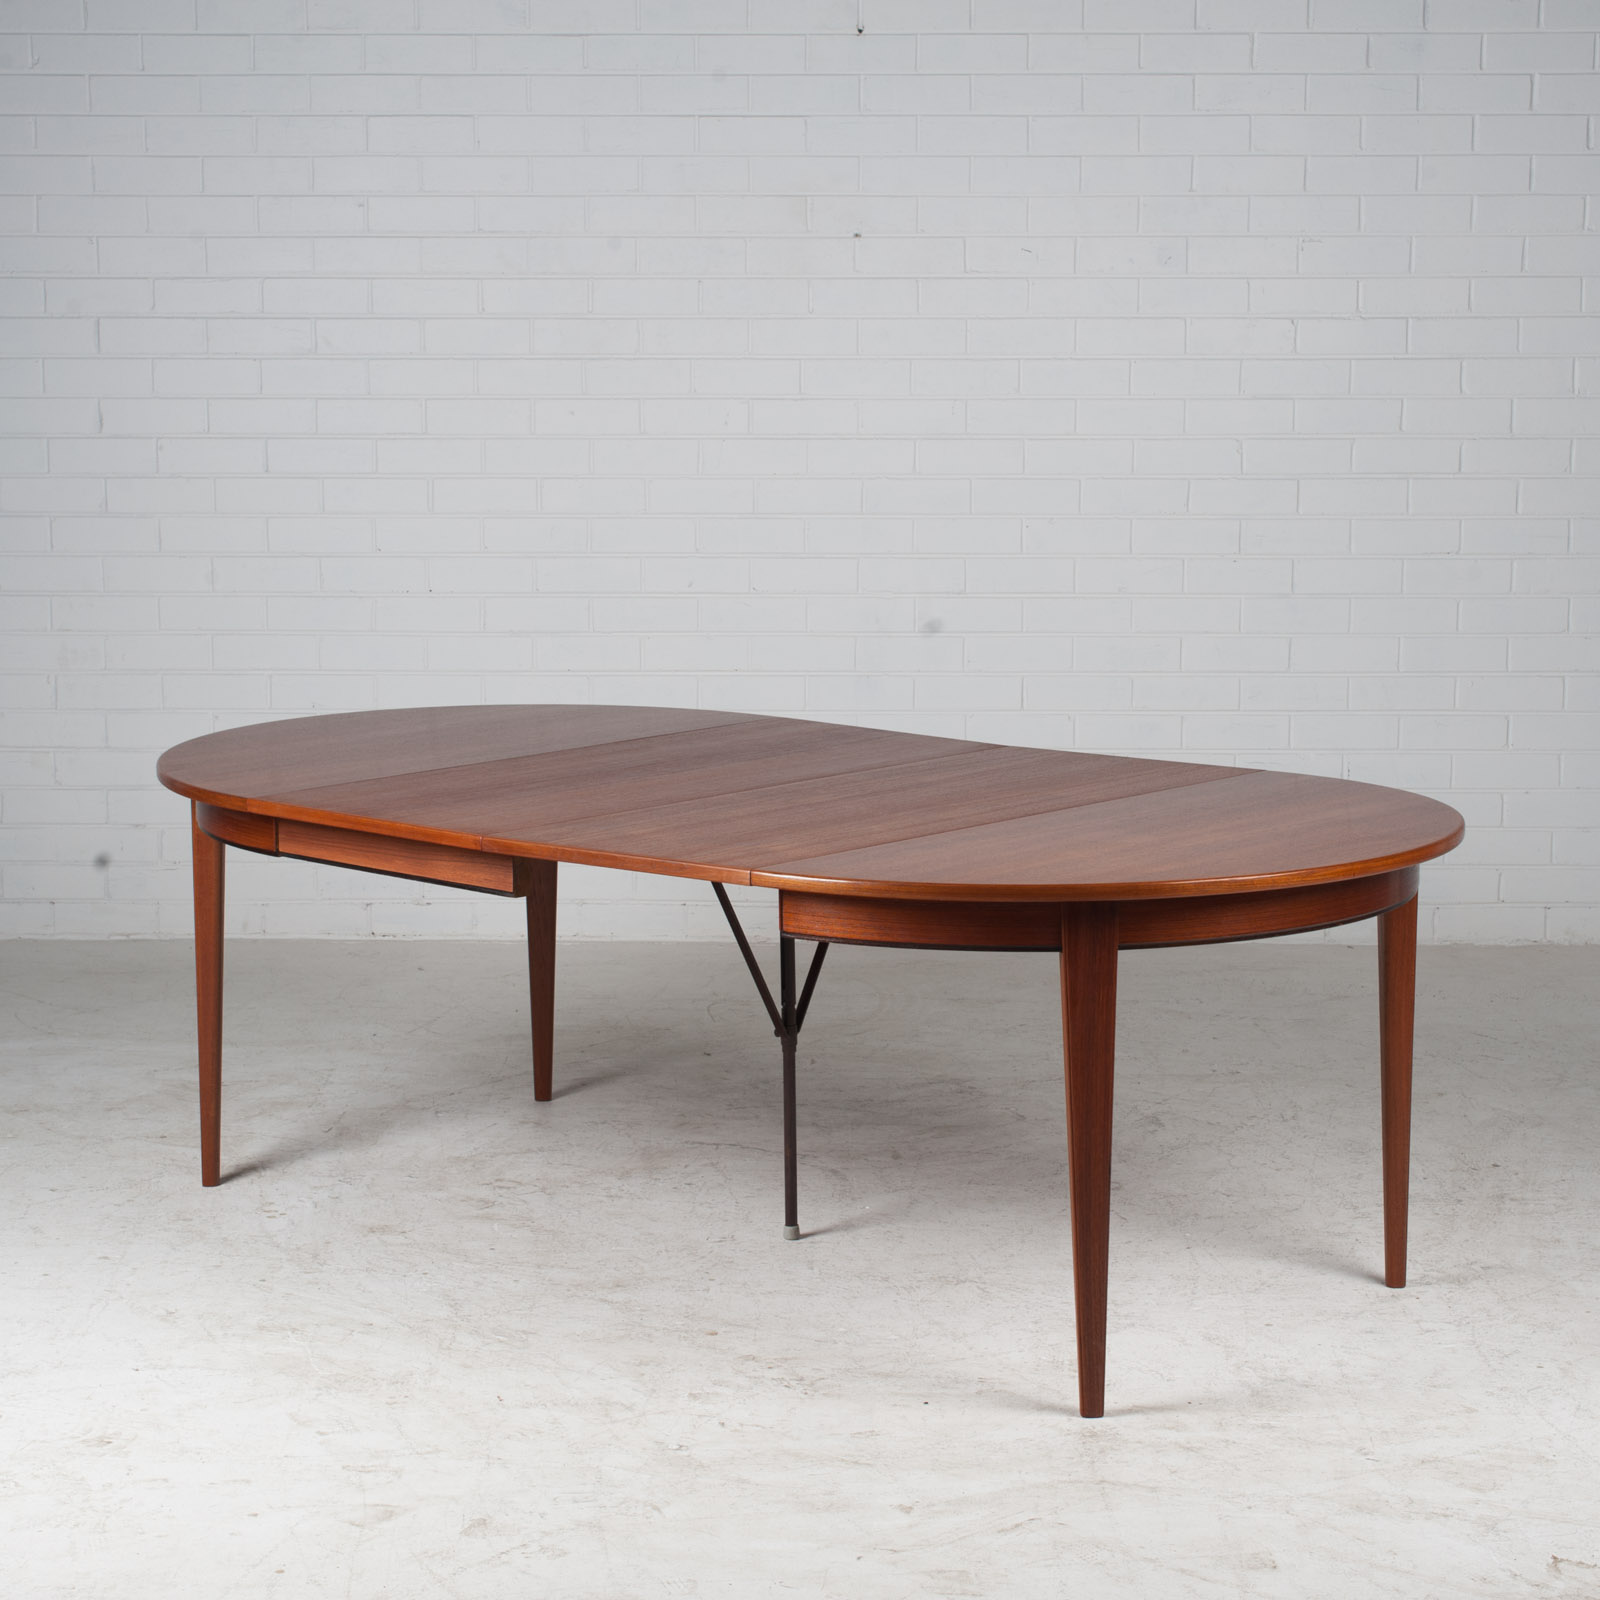 Round Dining Table By Omann Jun In Teak With Three Extensions 1960s Denmark 11